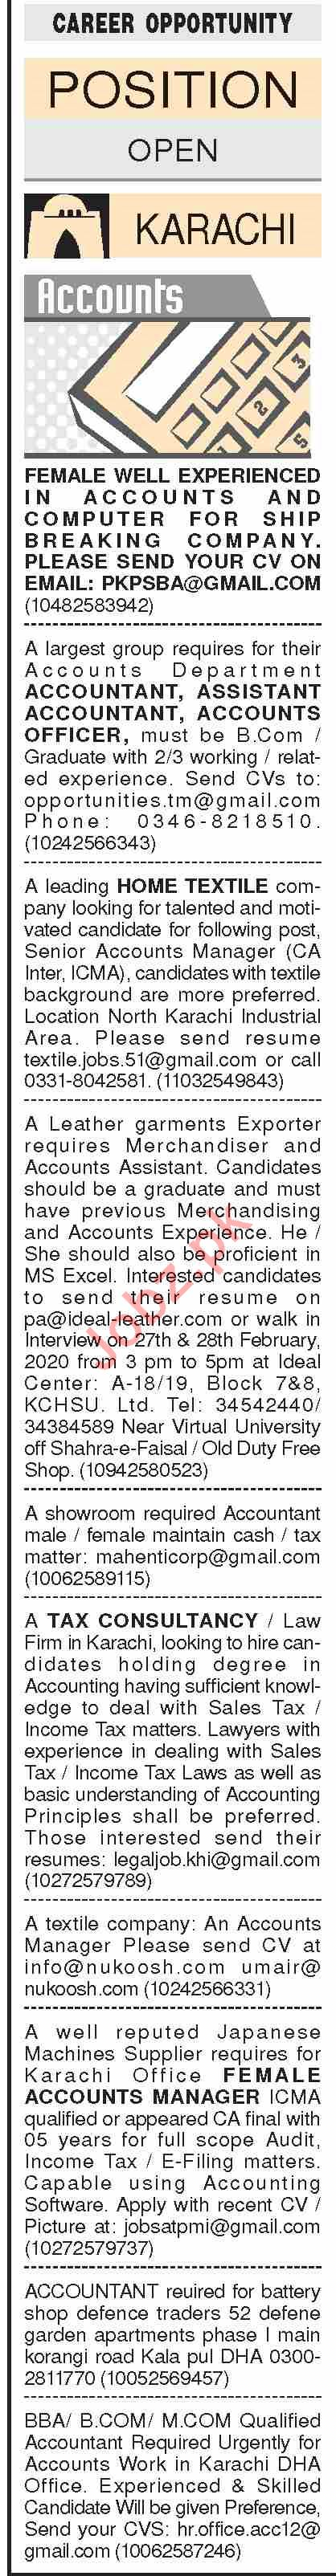 Dawn Sunday Classified Ads 23rd Feb 2020 for Accounts